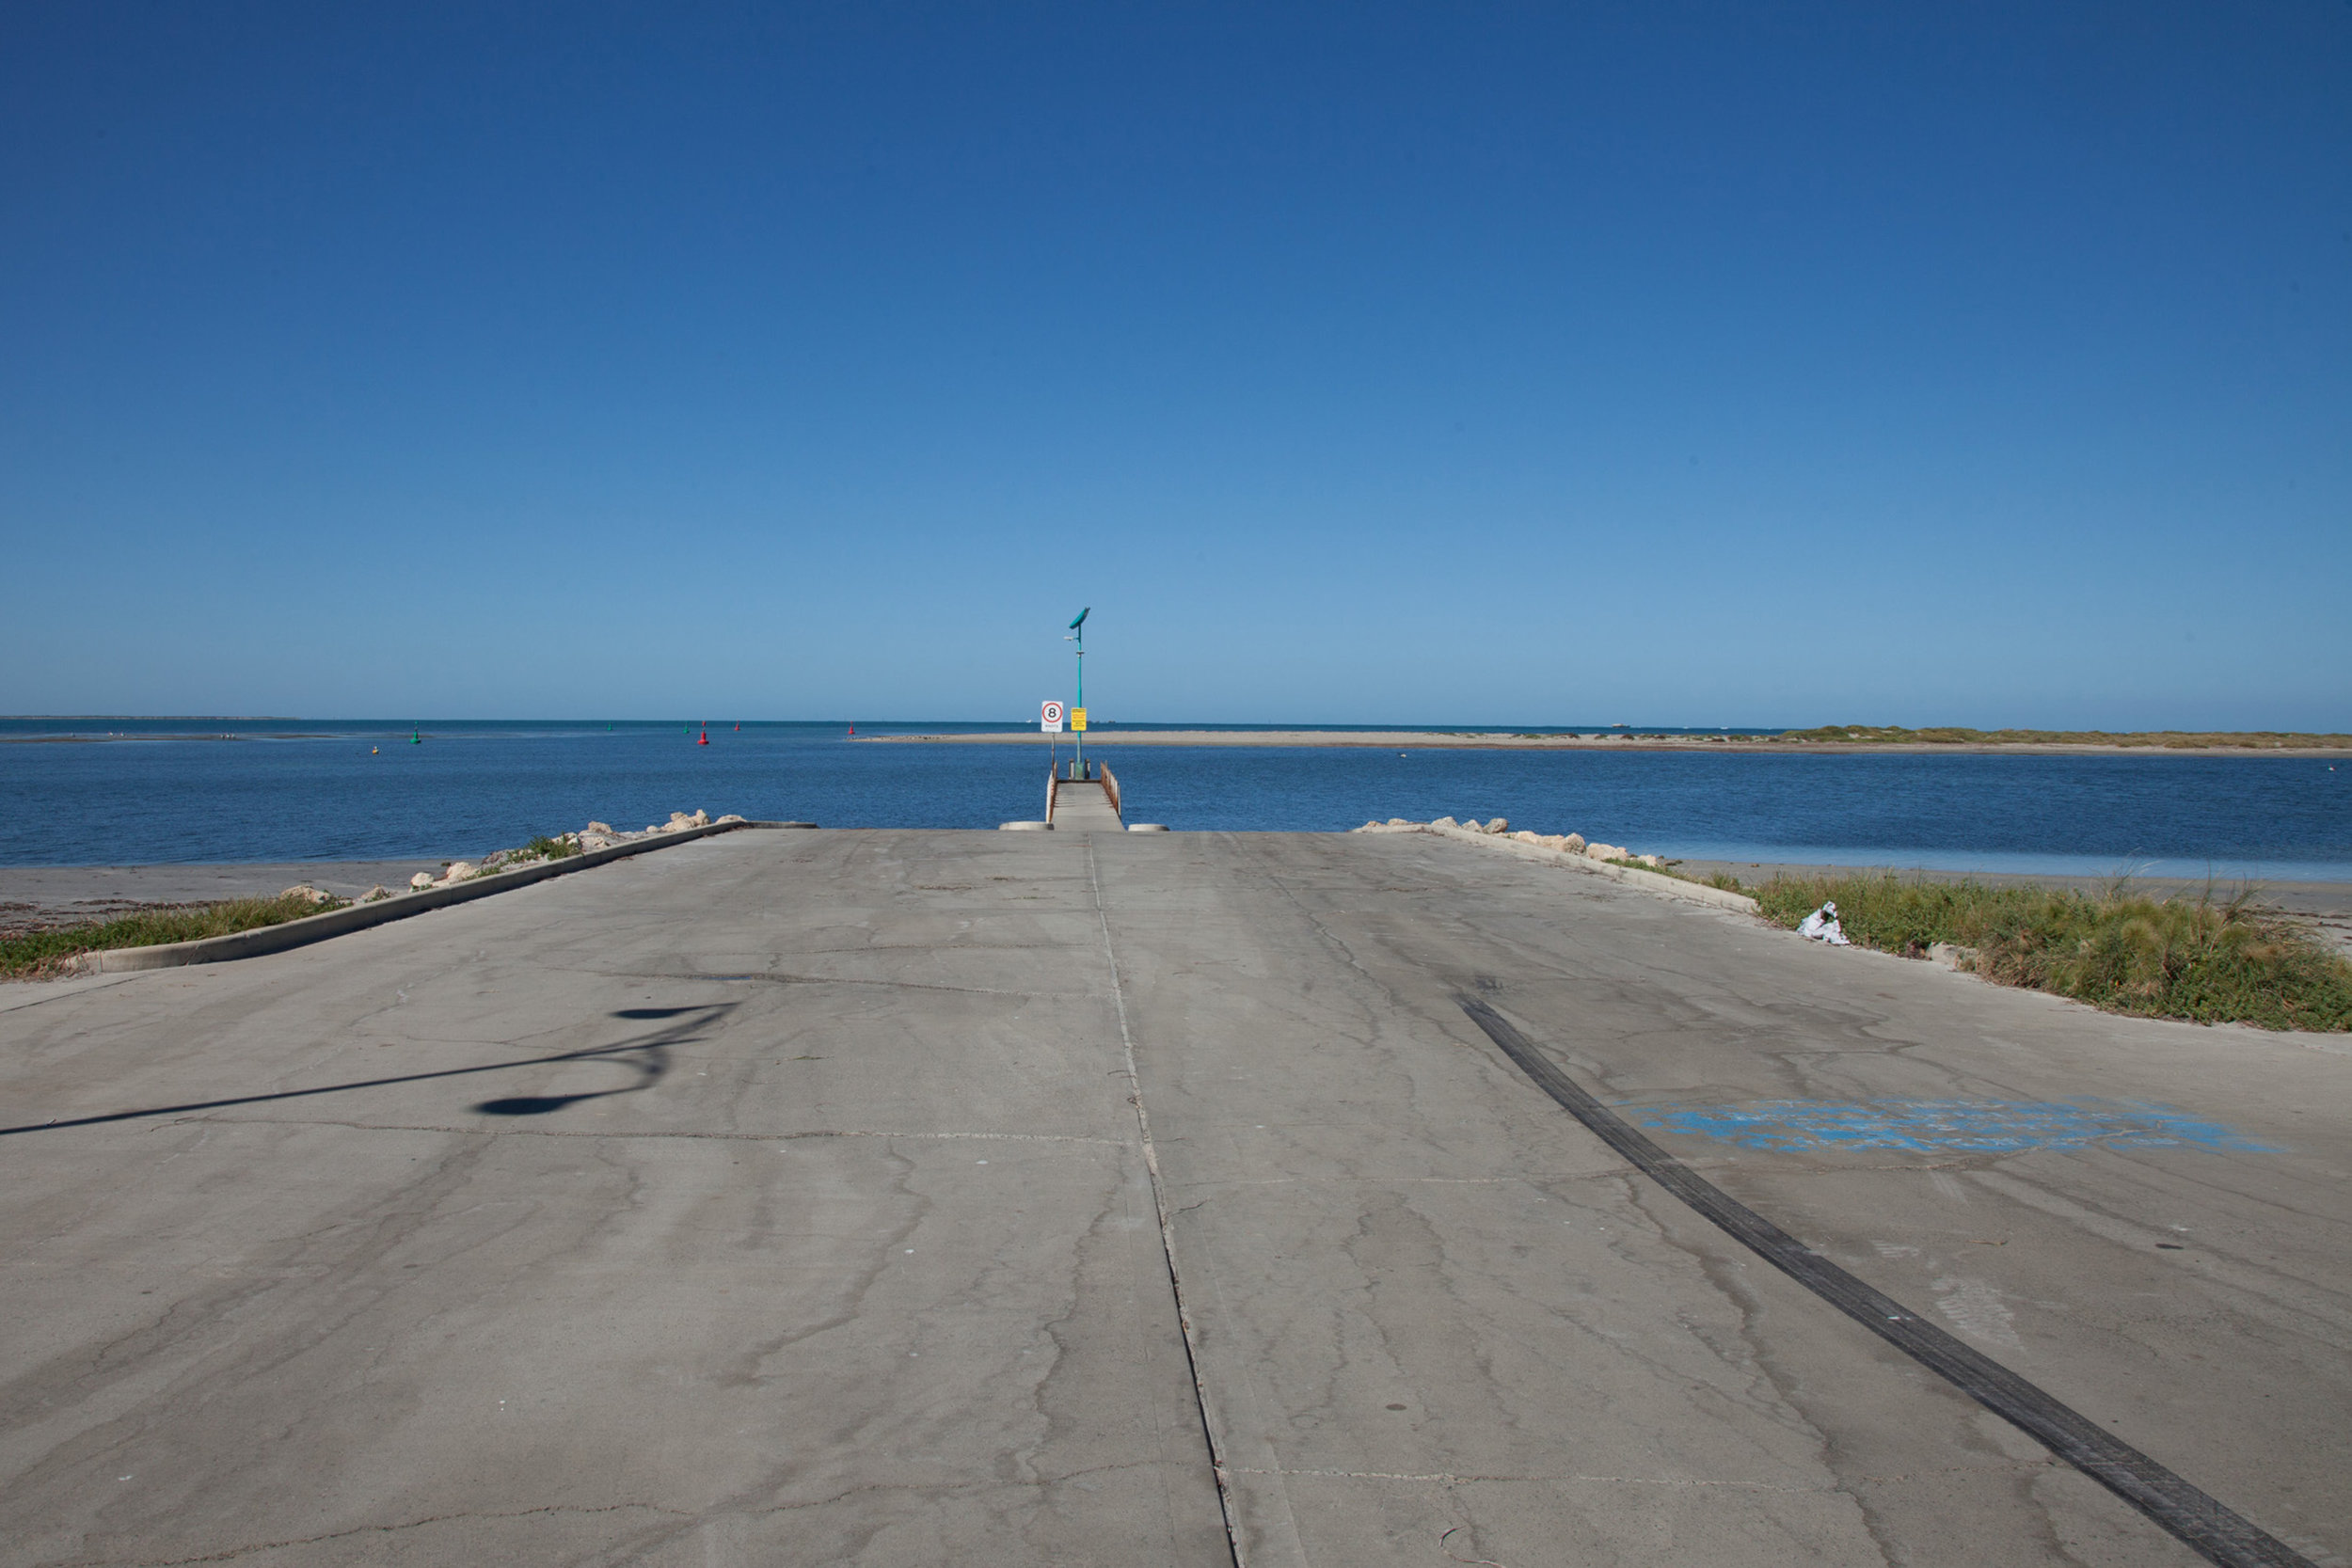 Plate 3: Boat ramp at the end of Brent Street. The dredged channel between the end of Tern Island and the sand bar is visible.